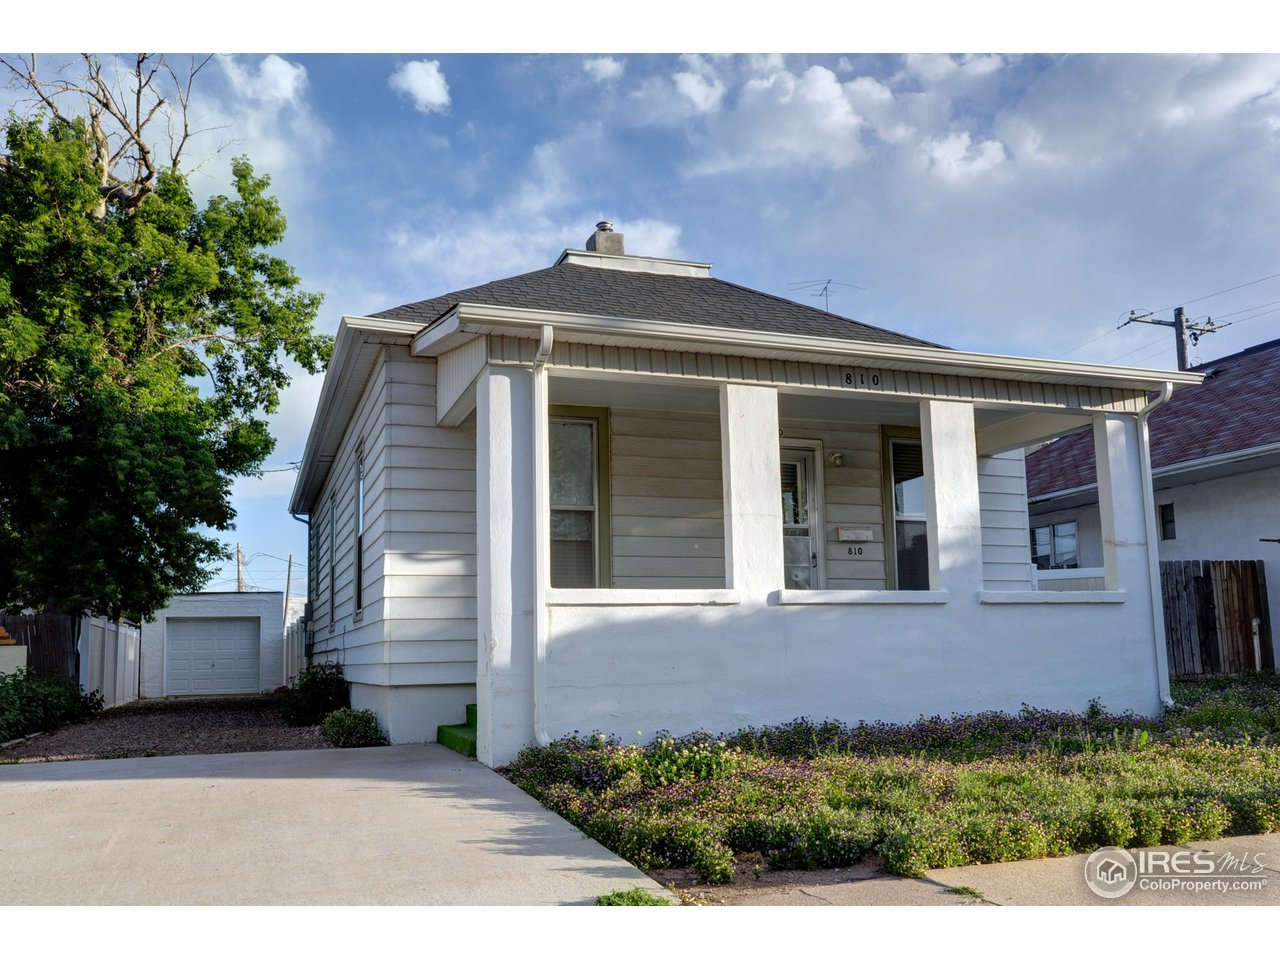 Property Photo For 810 15th St, Greeley, CO 80631, MLS # 852959